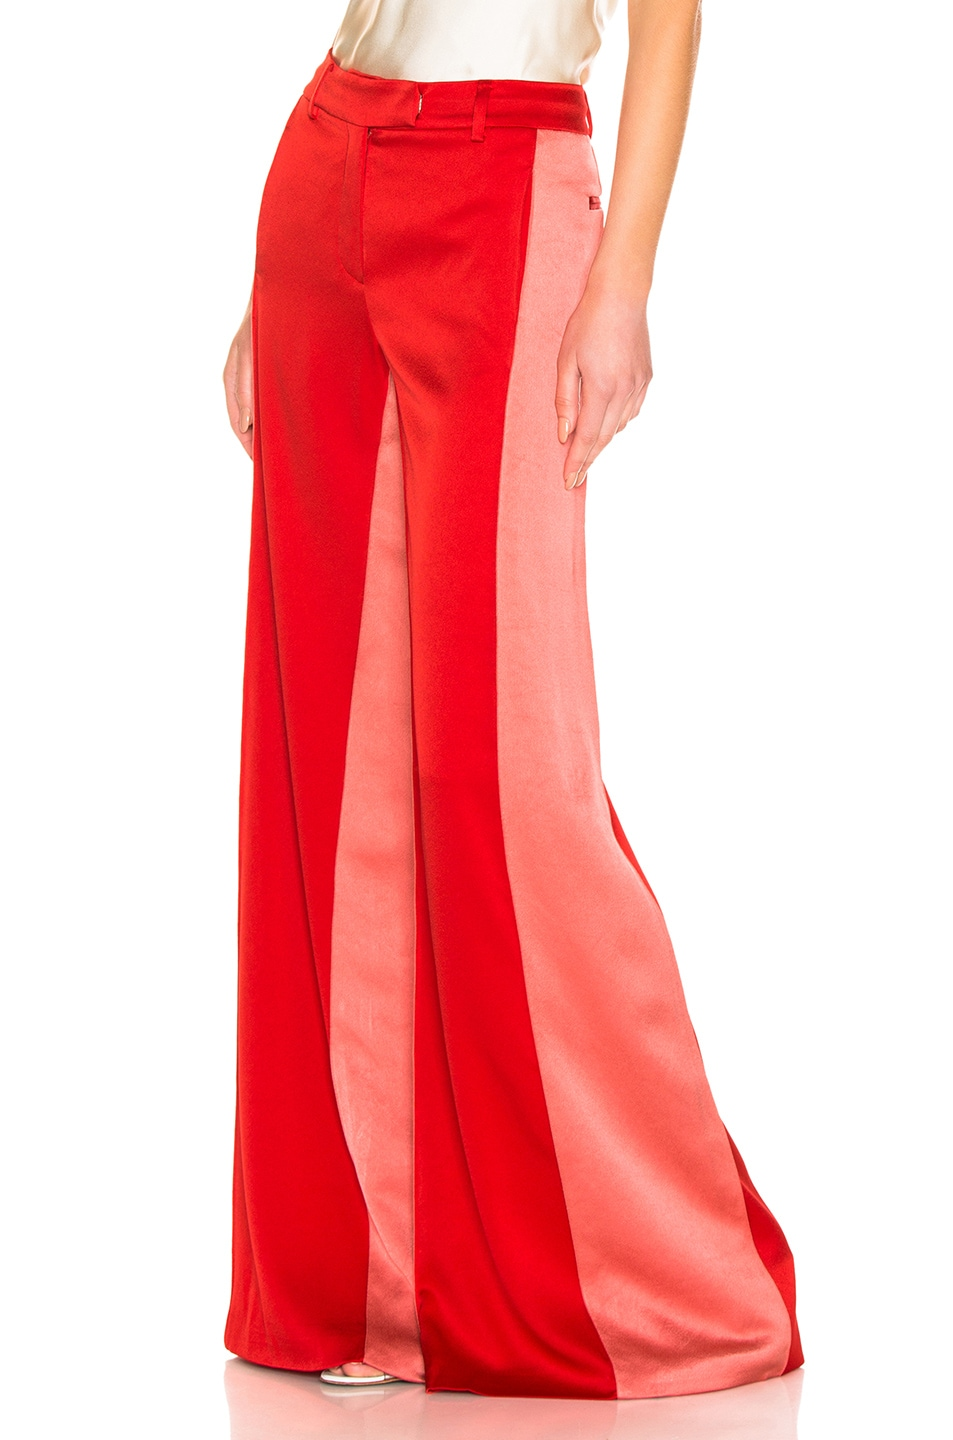 Image 1 of Alexis Flin Pant in Red